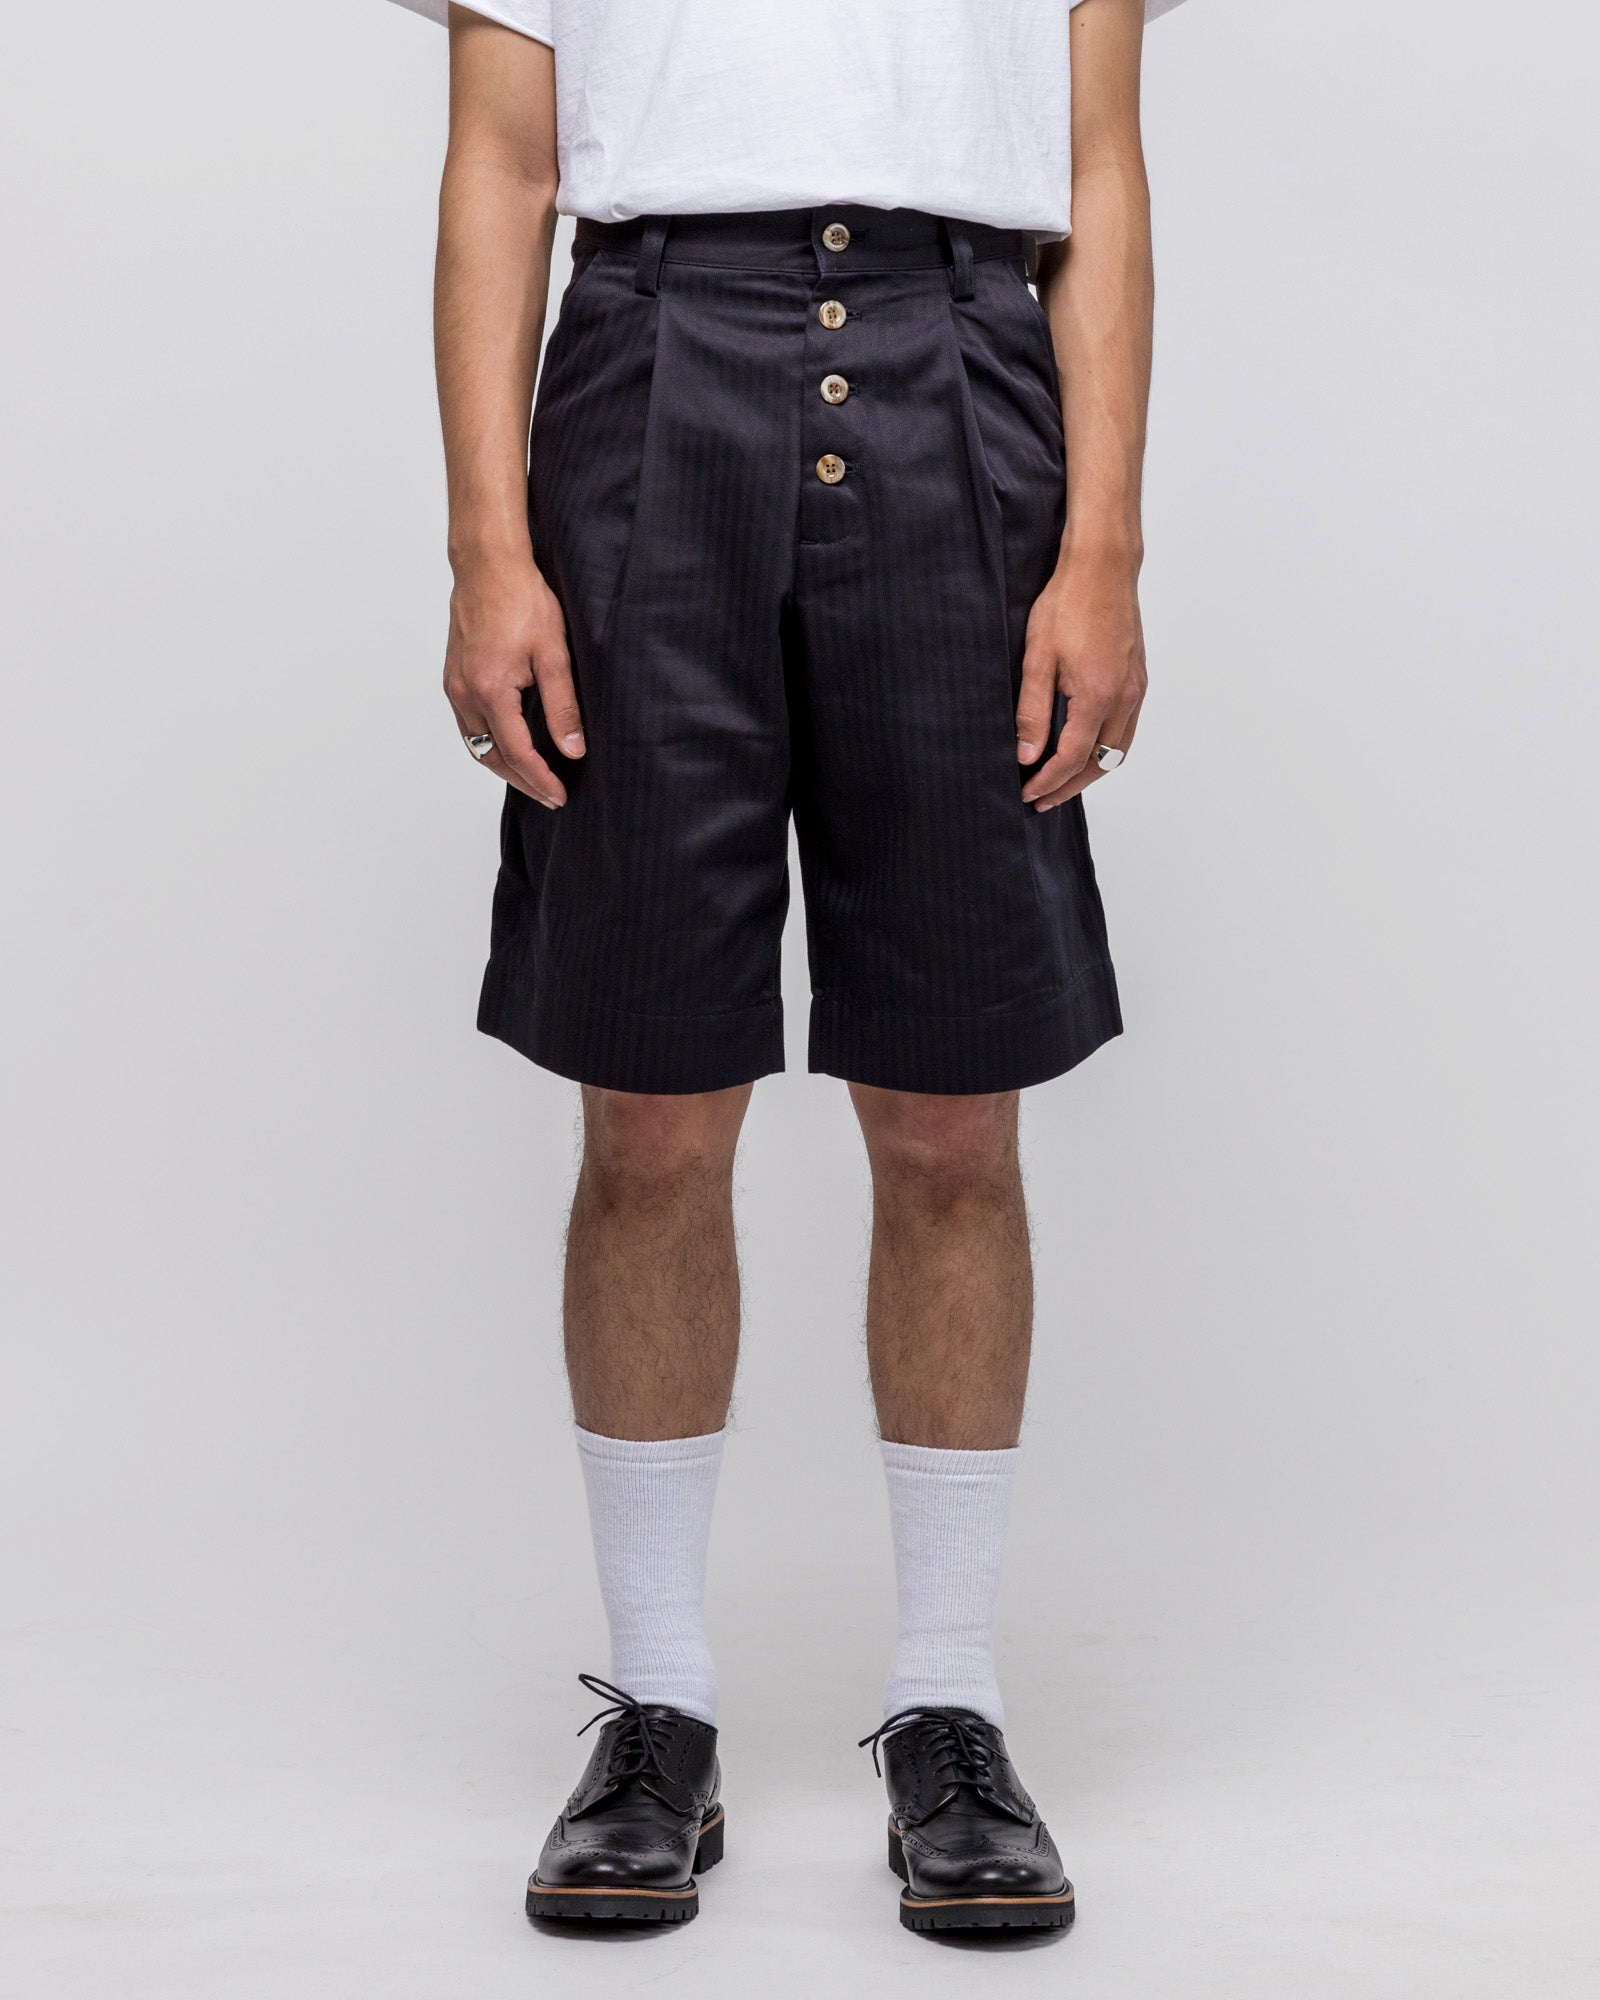 Dreamers Shorts in Navy